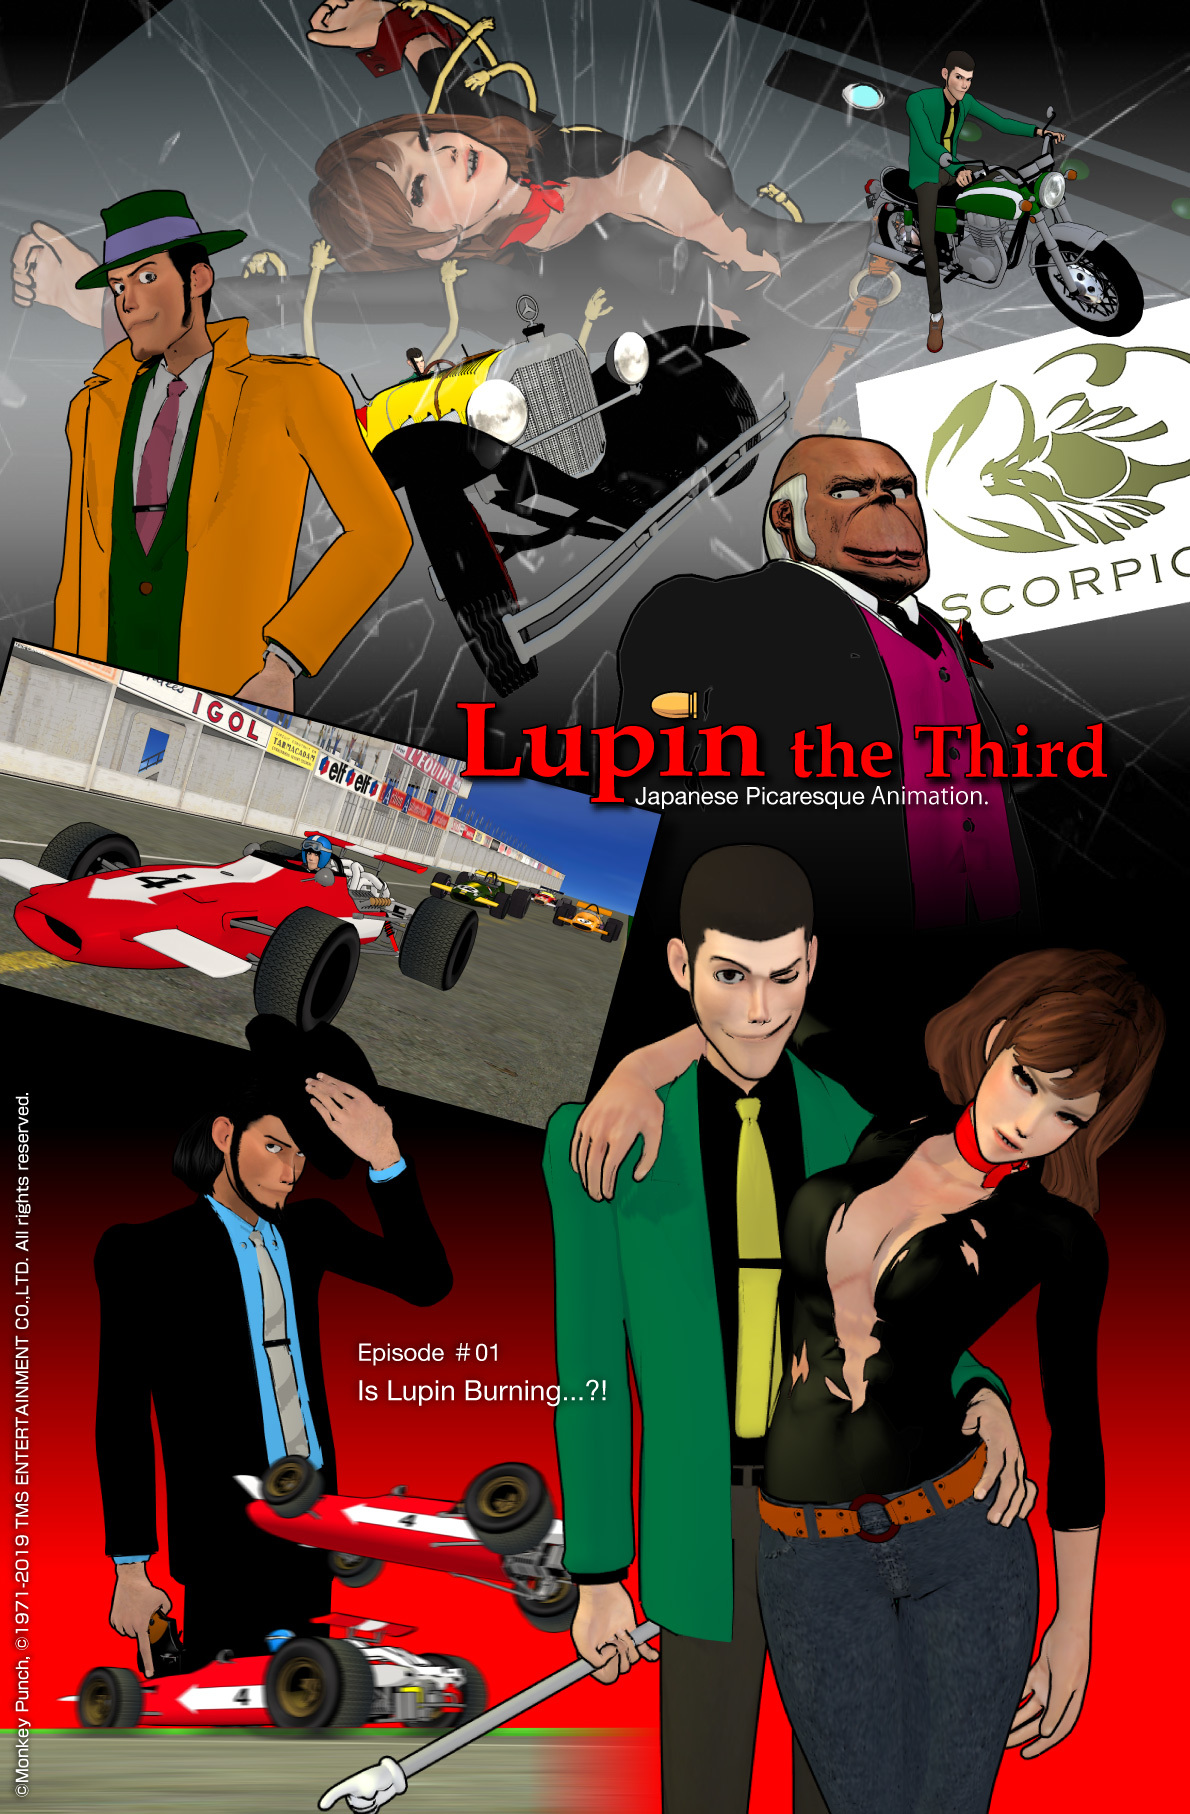 Prototype of Lupin III comic Cover Art #01